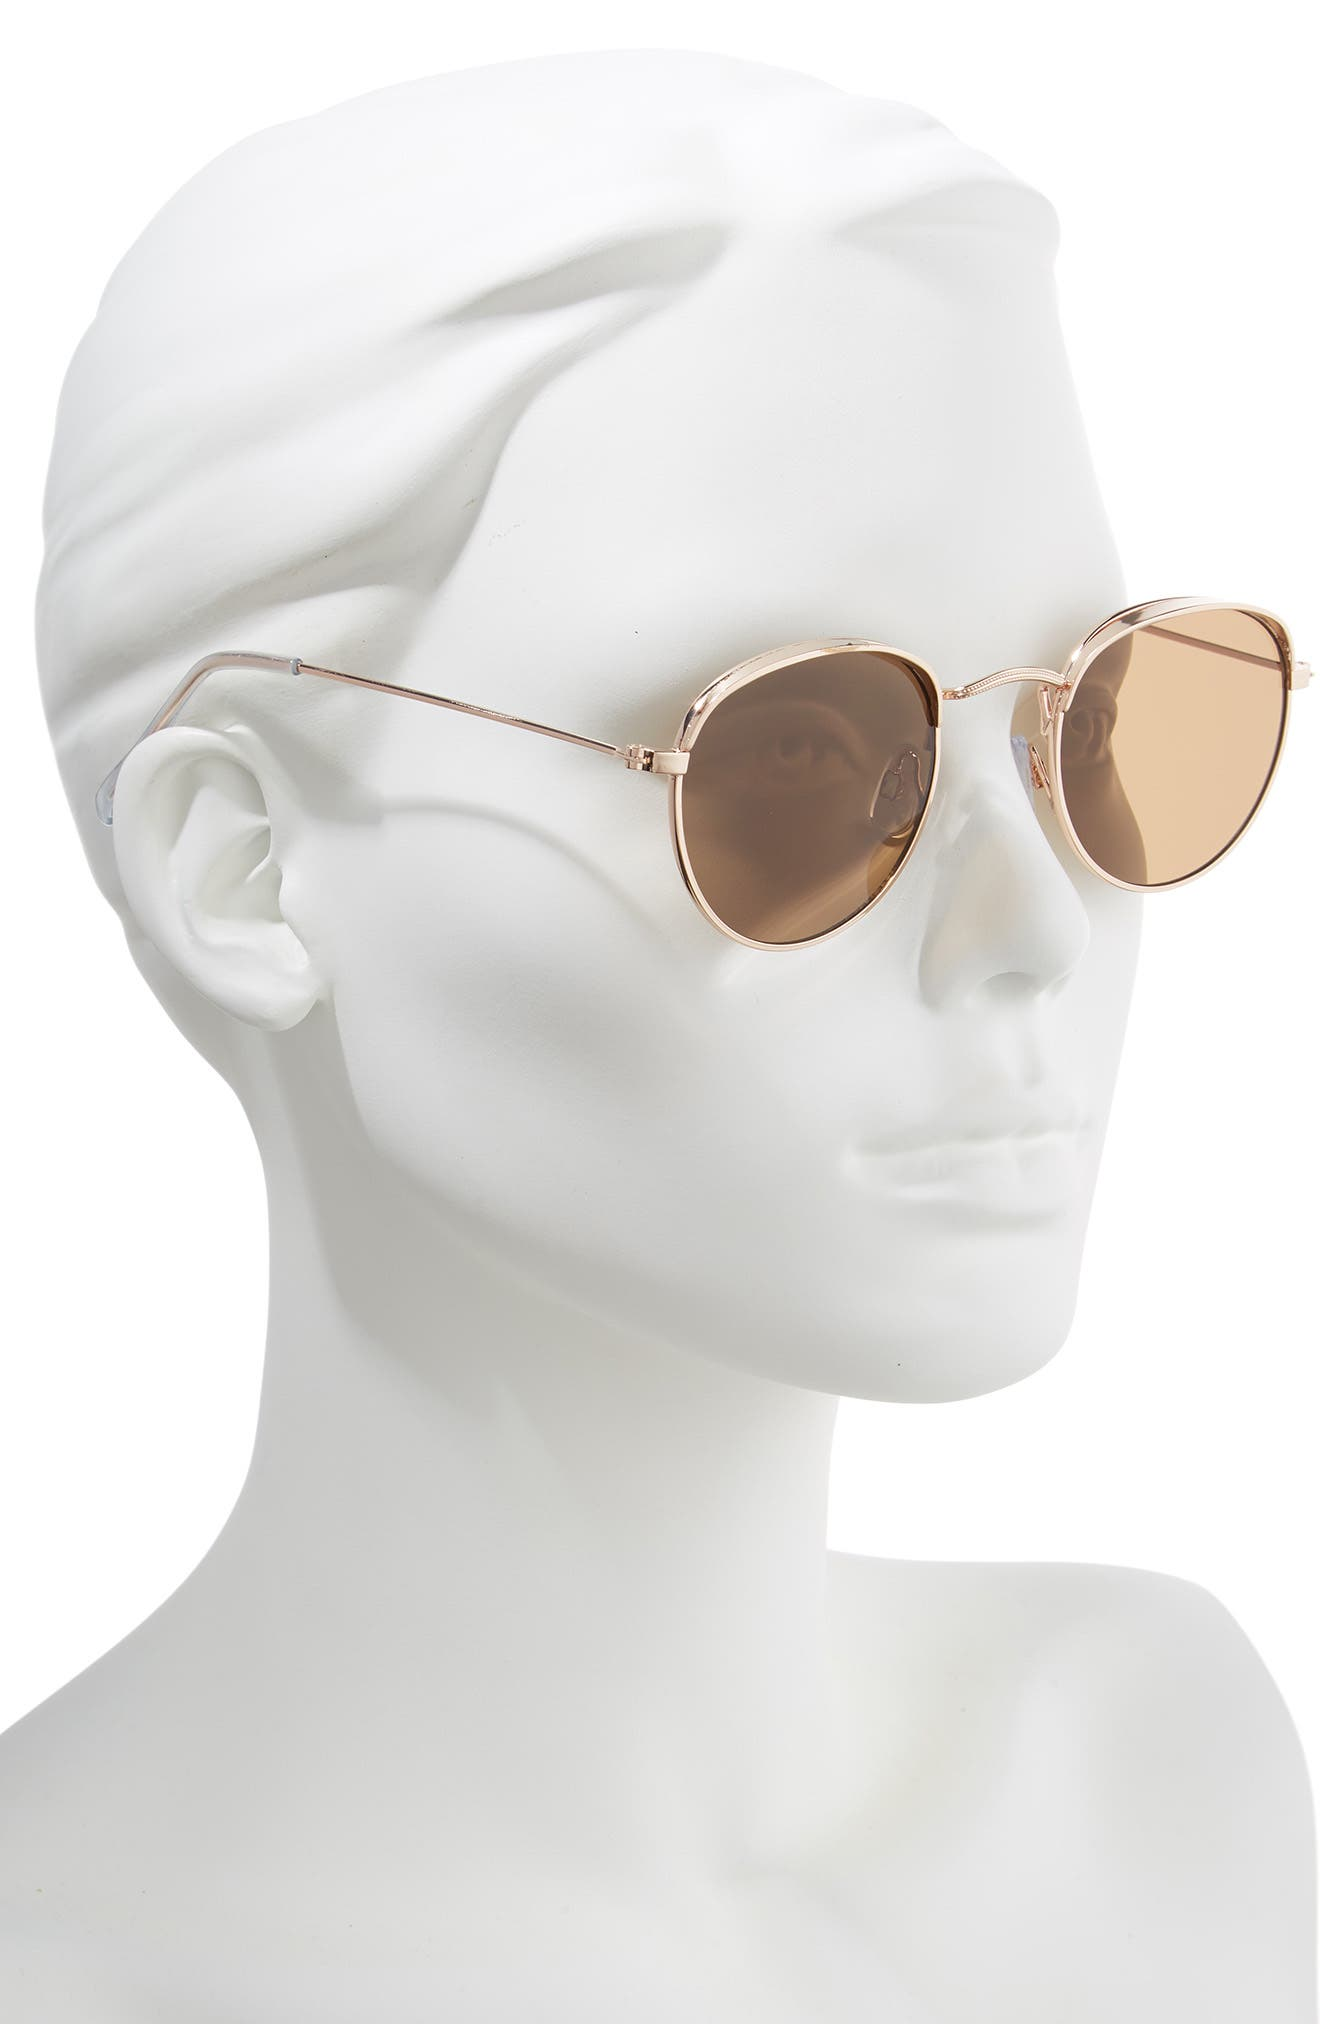 50mm Round Sunglasses,                             Alternate thumbnail 2, color,                             GOLD/ BROWN